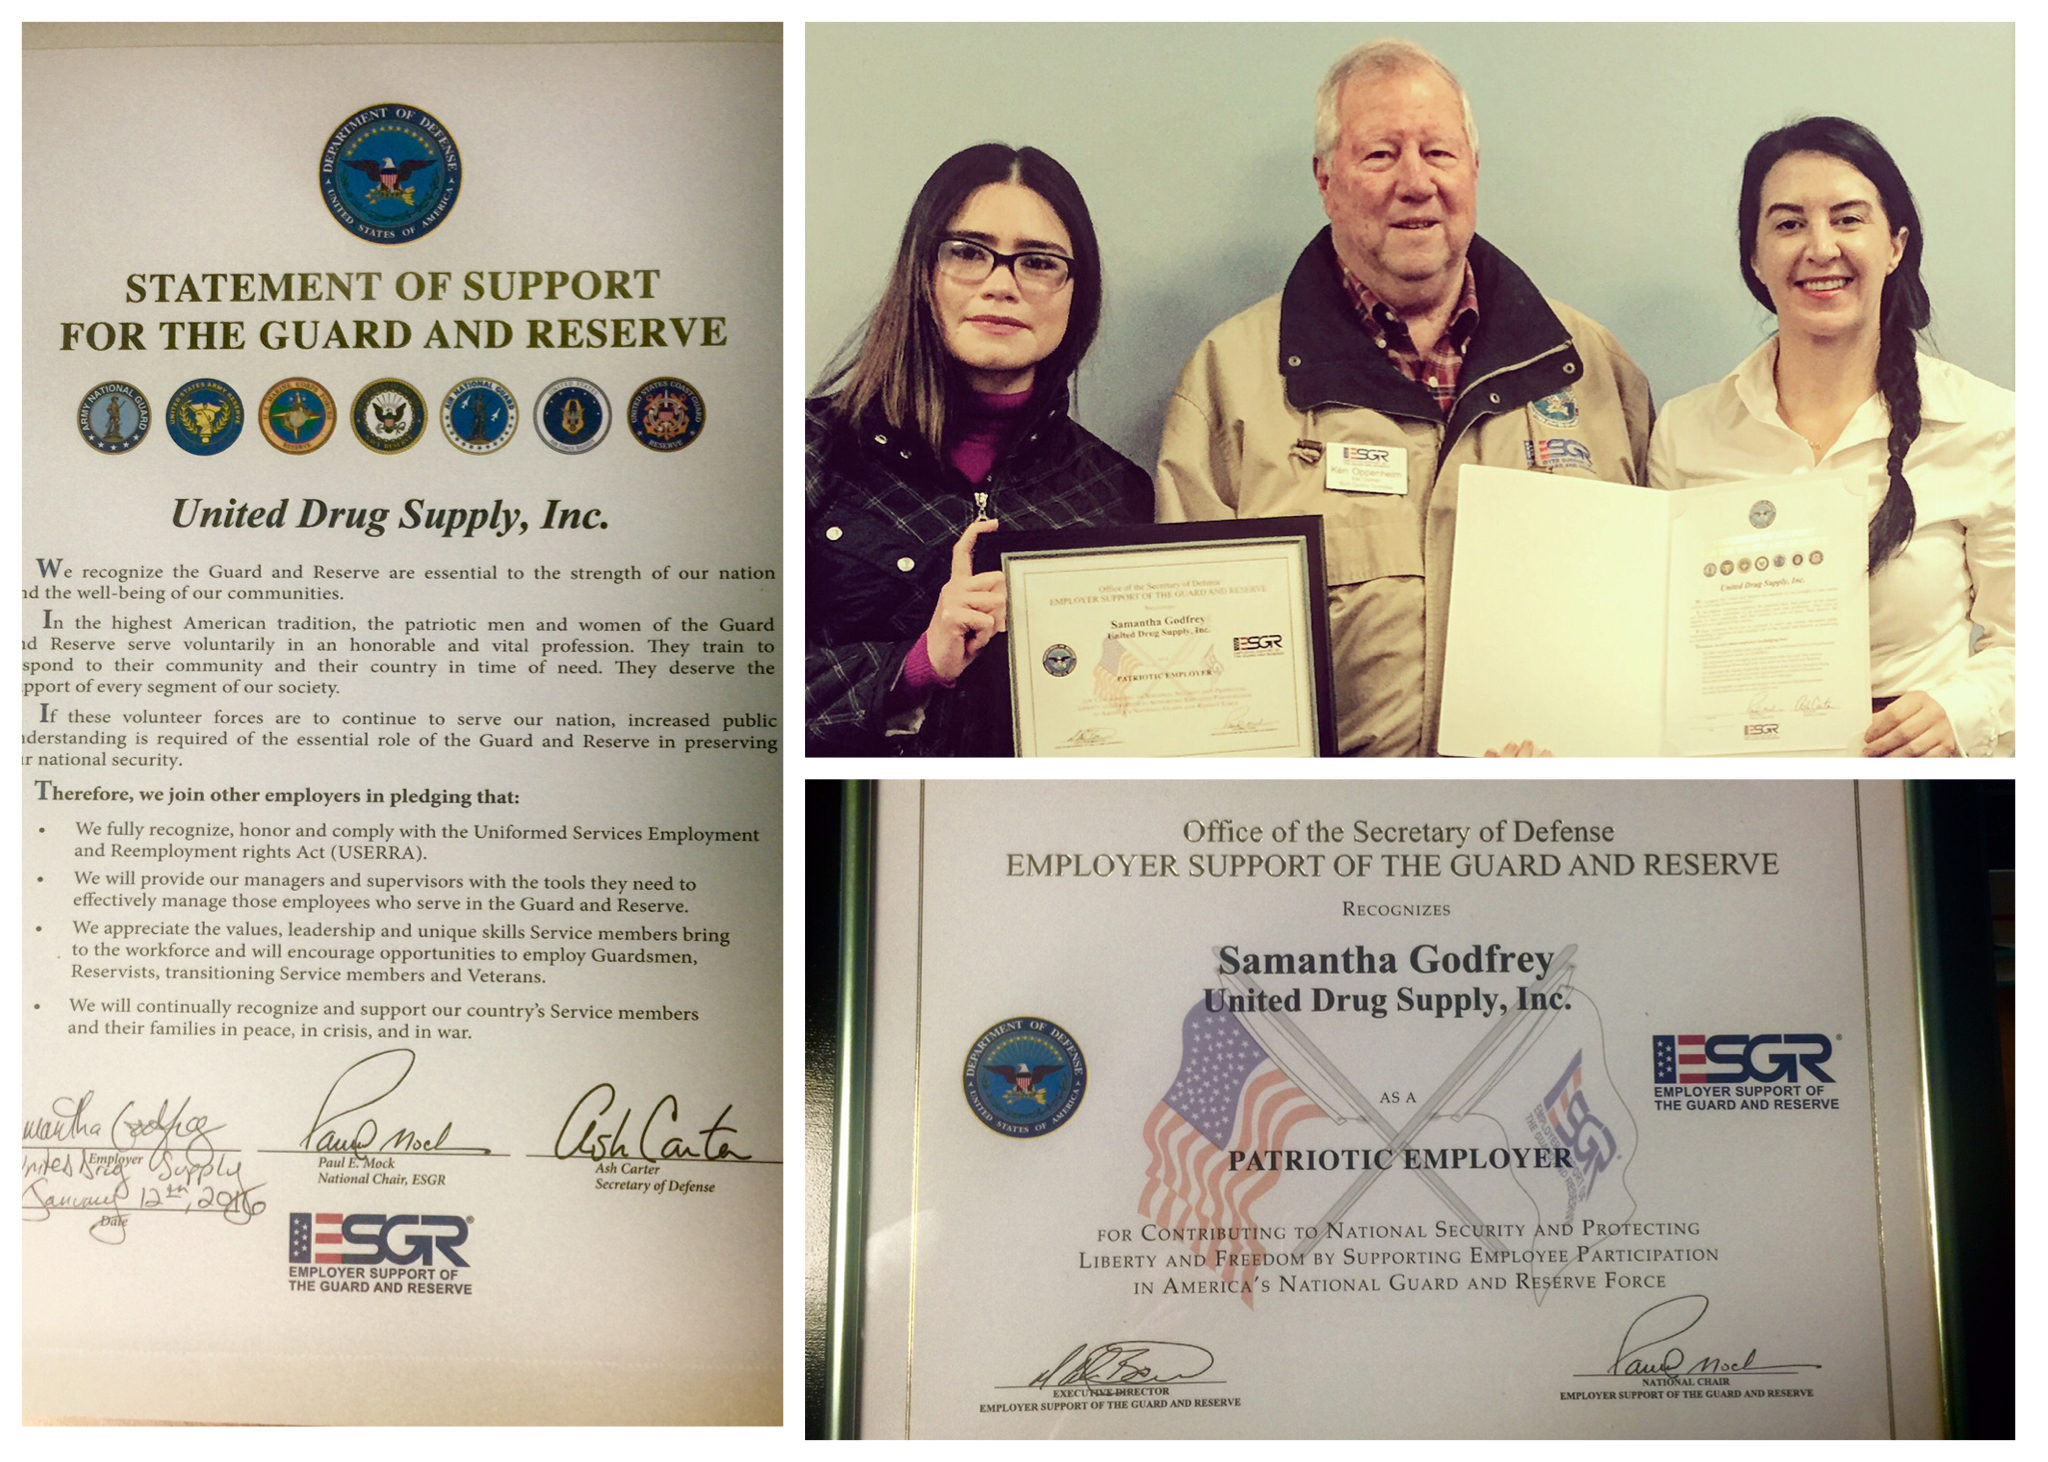 Upper right photo pictured left to right: Petty Officer Maria Montoya, United States Navy Reserve, Ken Oppenheim, ESGR, and Samantha Godfrey, United Drug Supply CEO